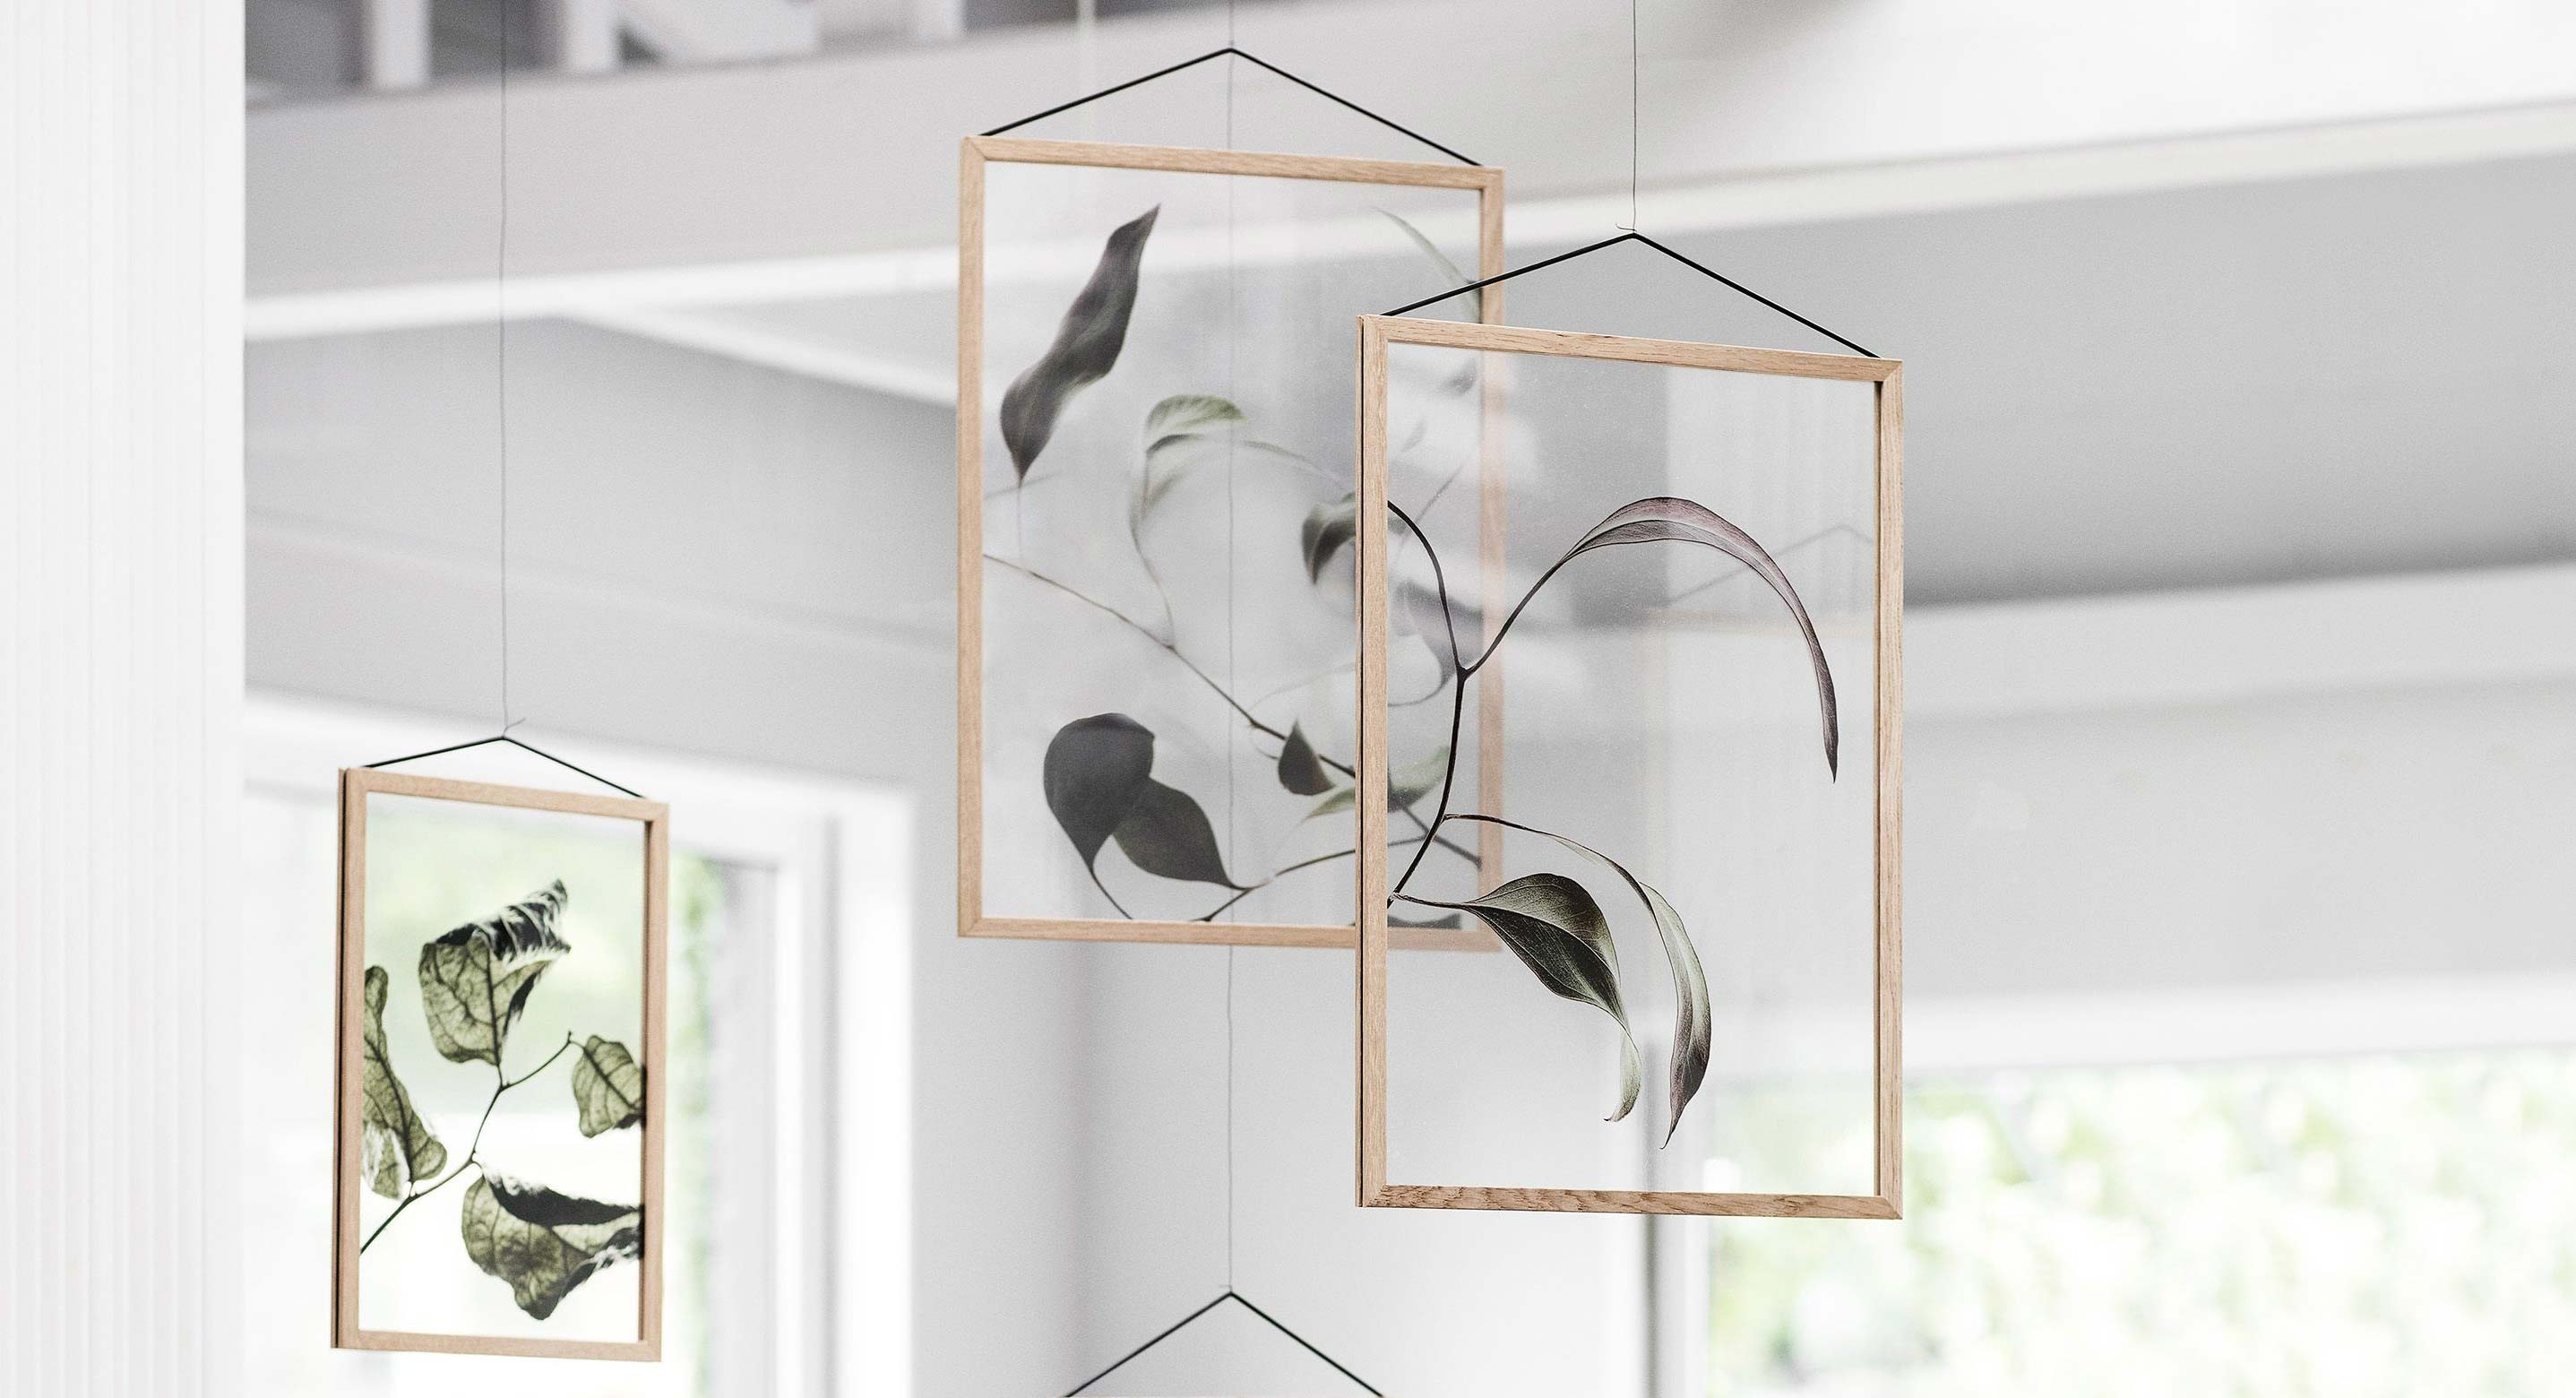 Three Danish Design Giants Join Forces To Release Transparent Botanical Prints